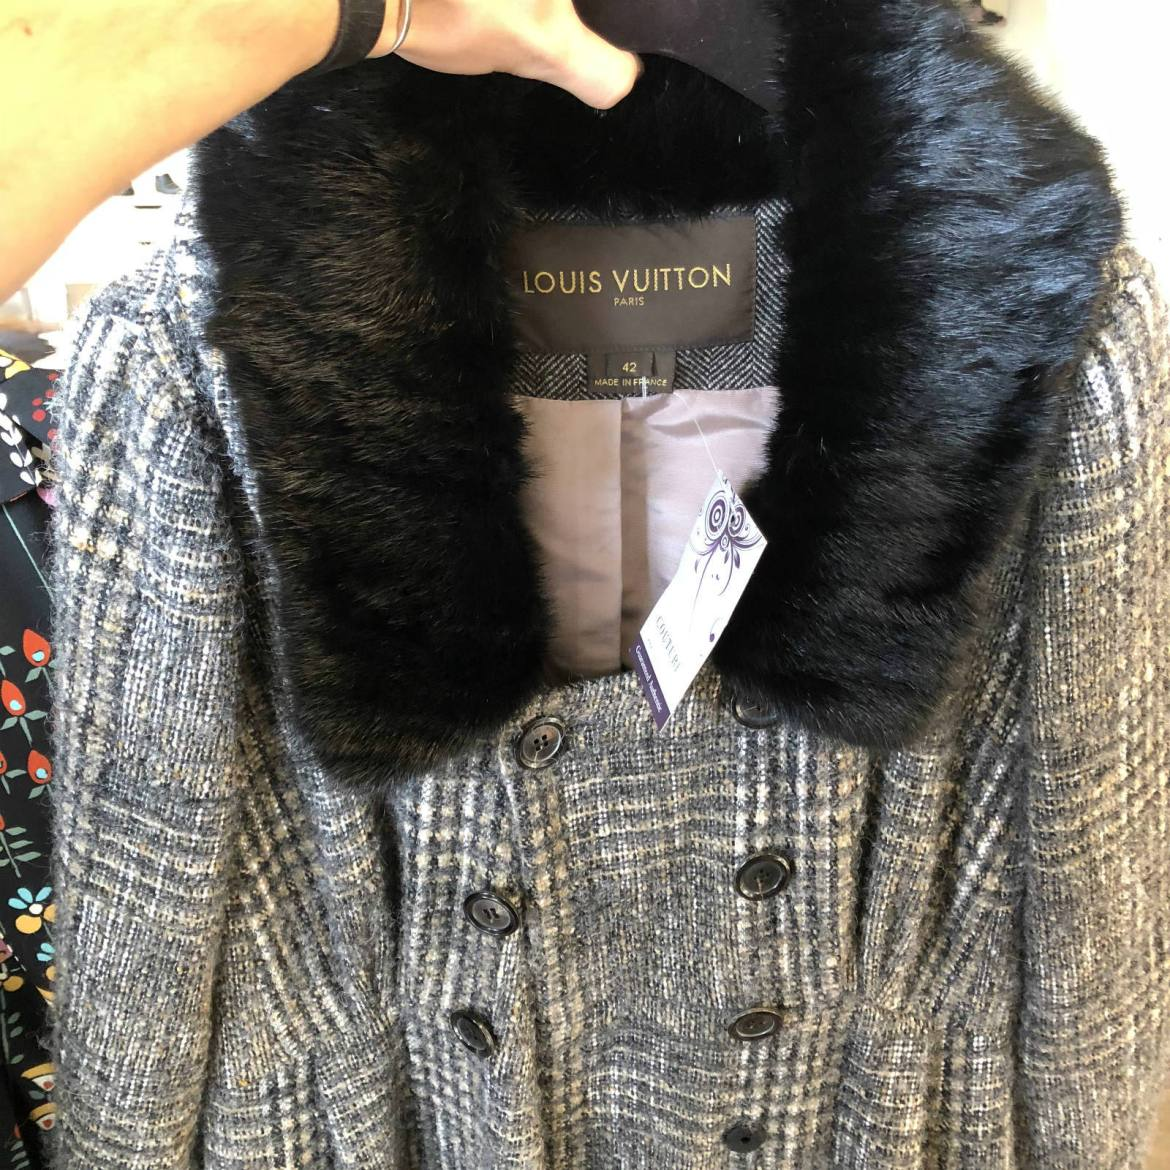 Louis Vuitton Tweed Coat with fur collar at Couture USA